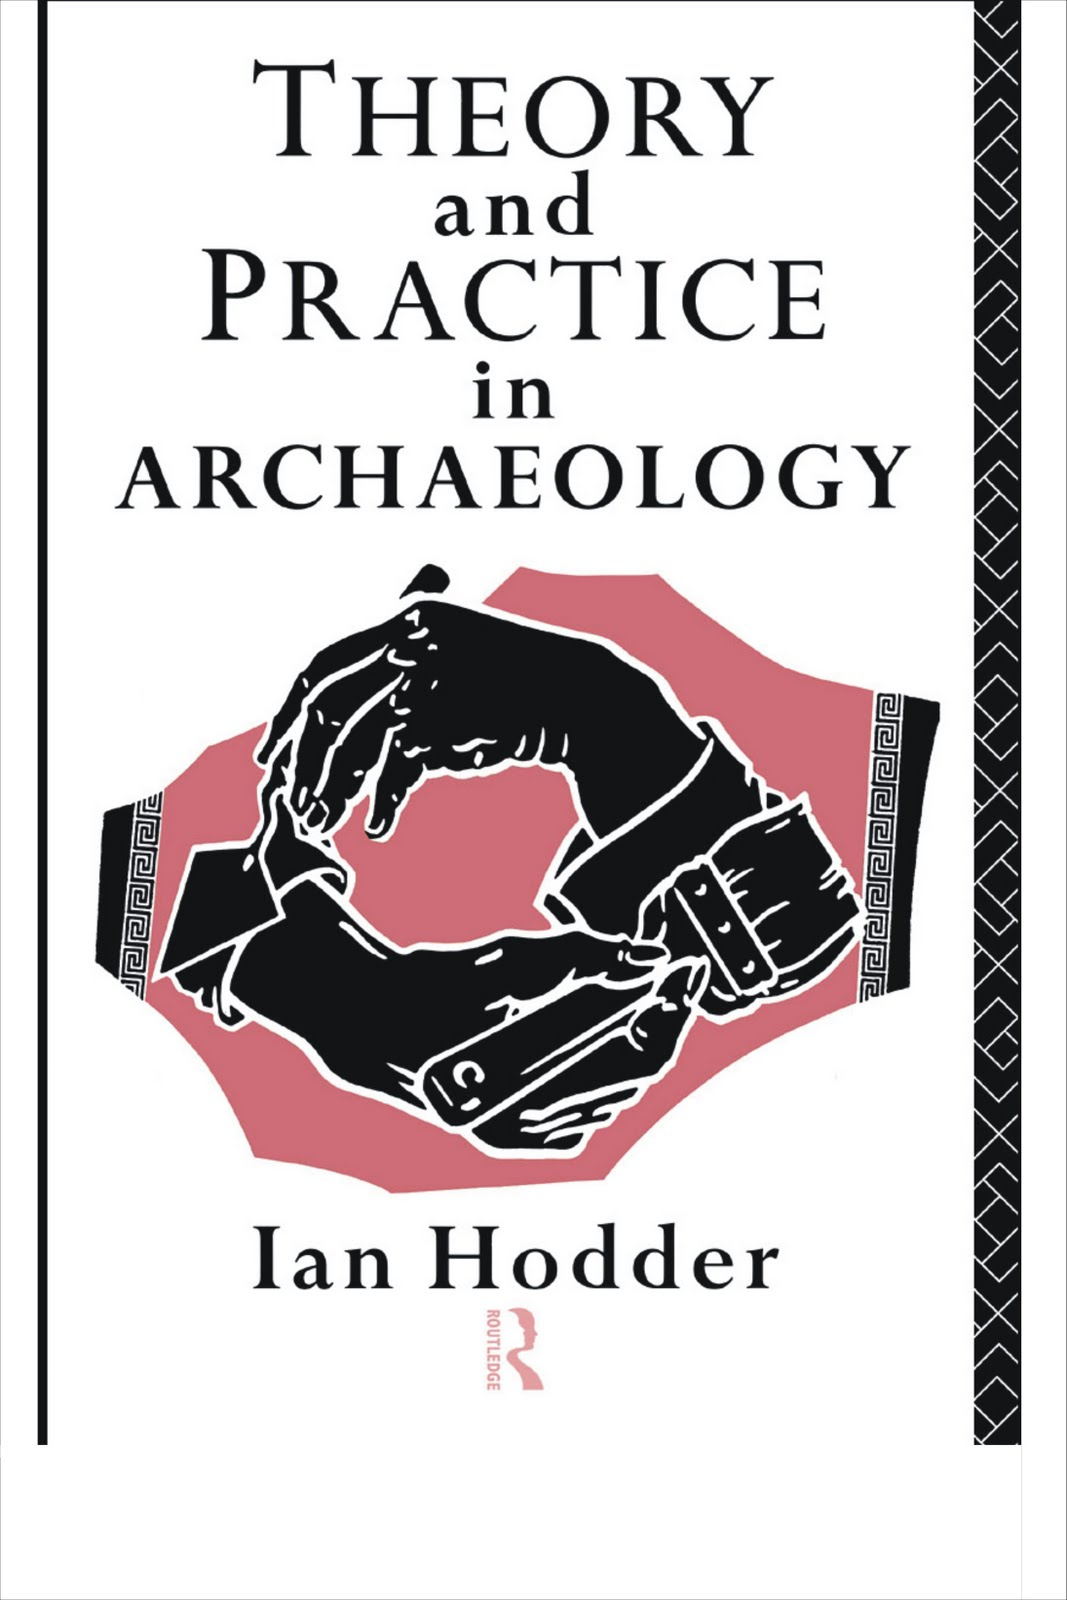 theory-and-practice-in-archaeology-by-ian-hodder.jpg